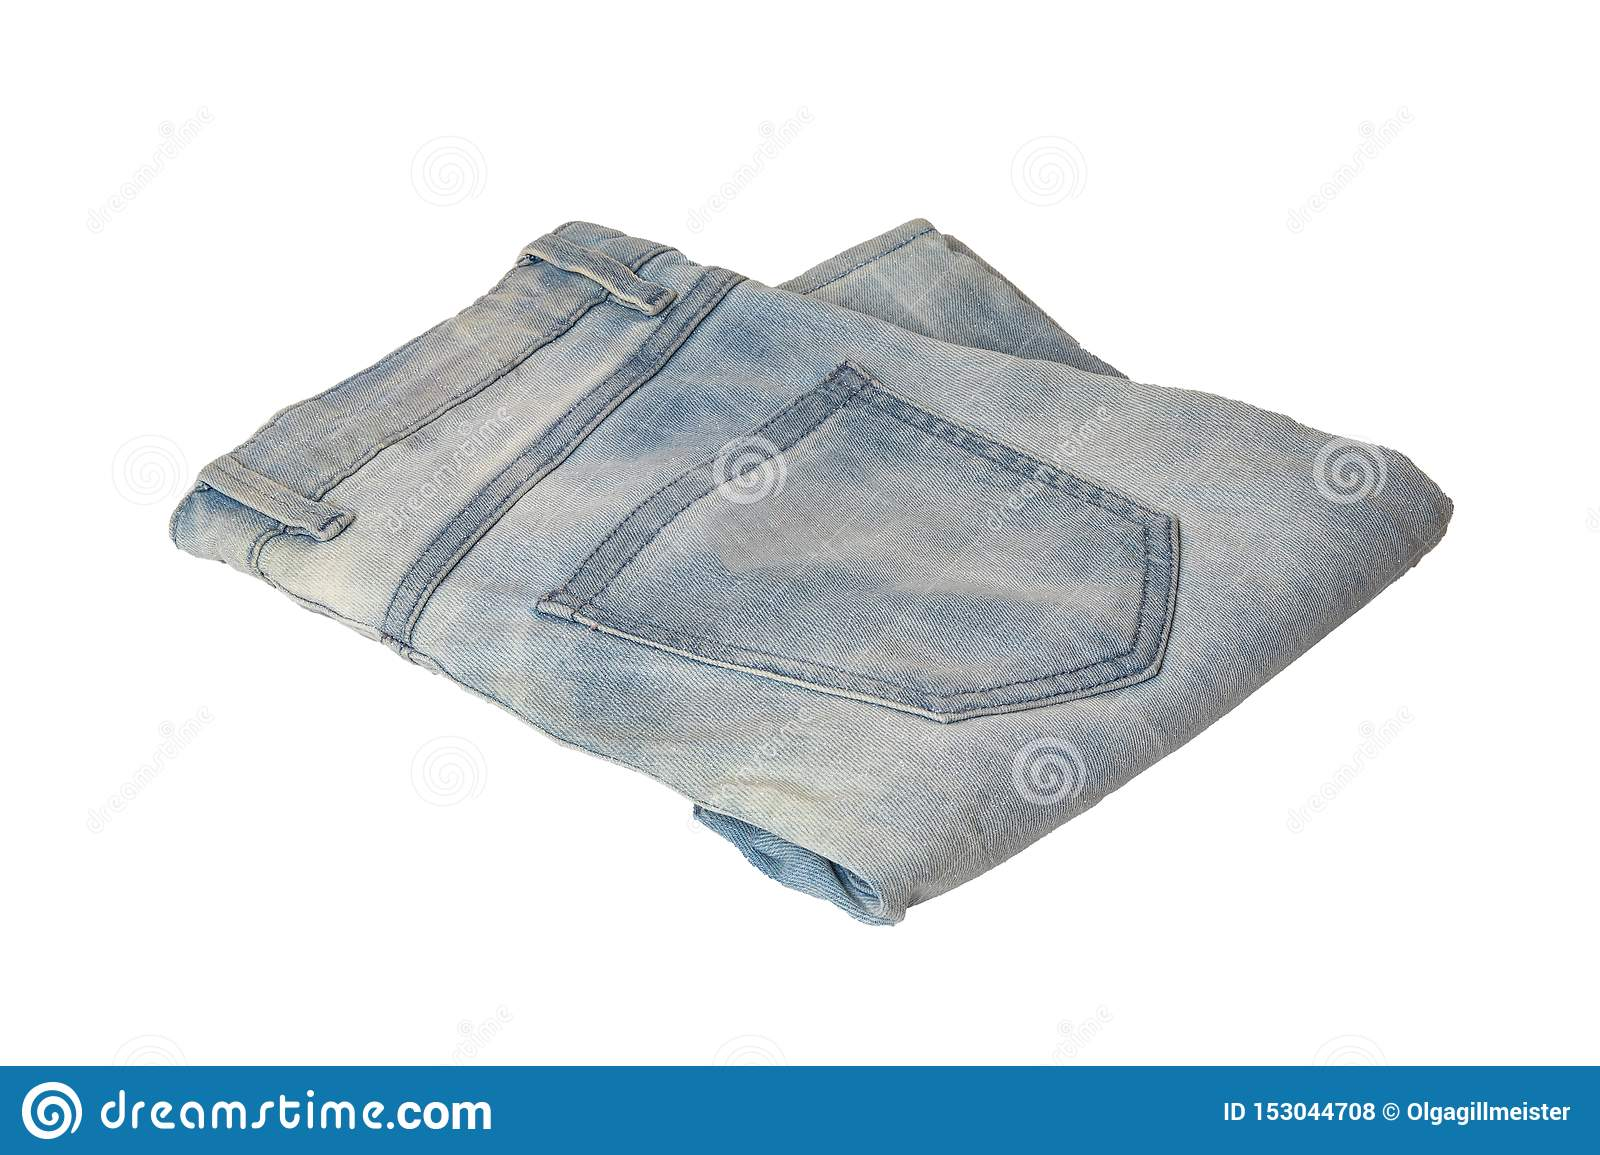 Woman jeans isolated. Folded trendy stylish female blue jeans trousers isolated on a white background. Fashionable denim pants for